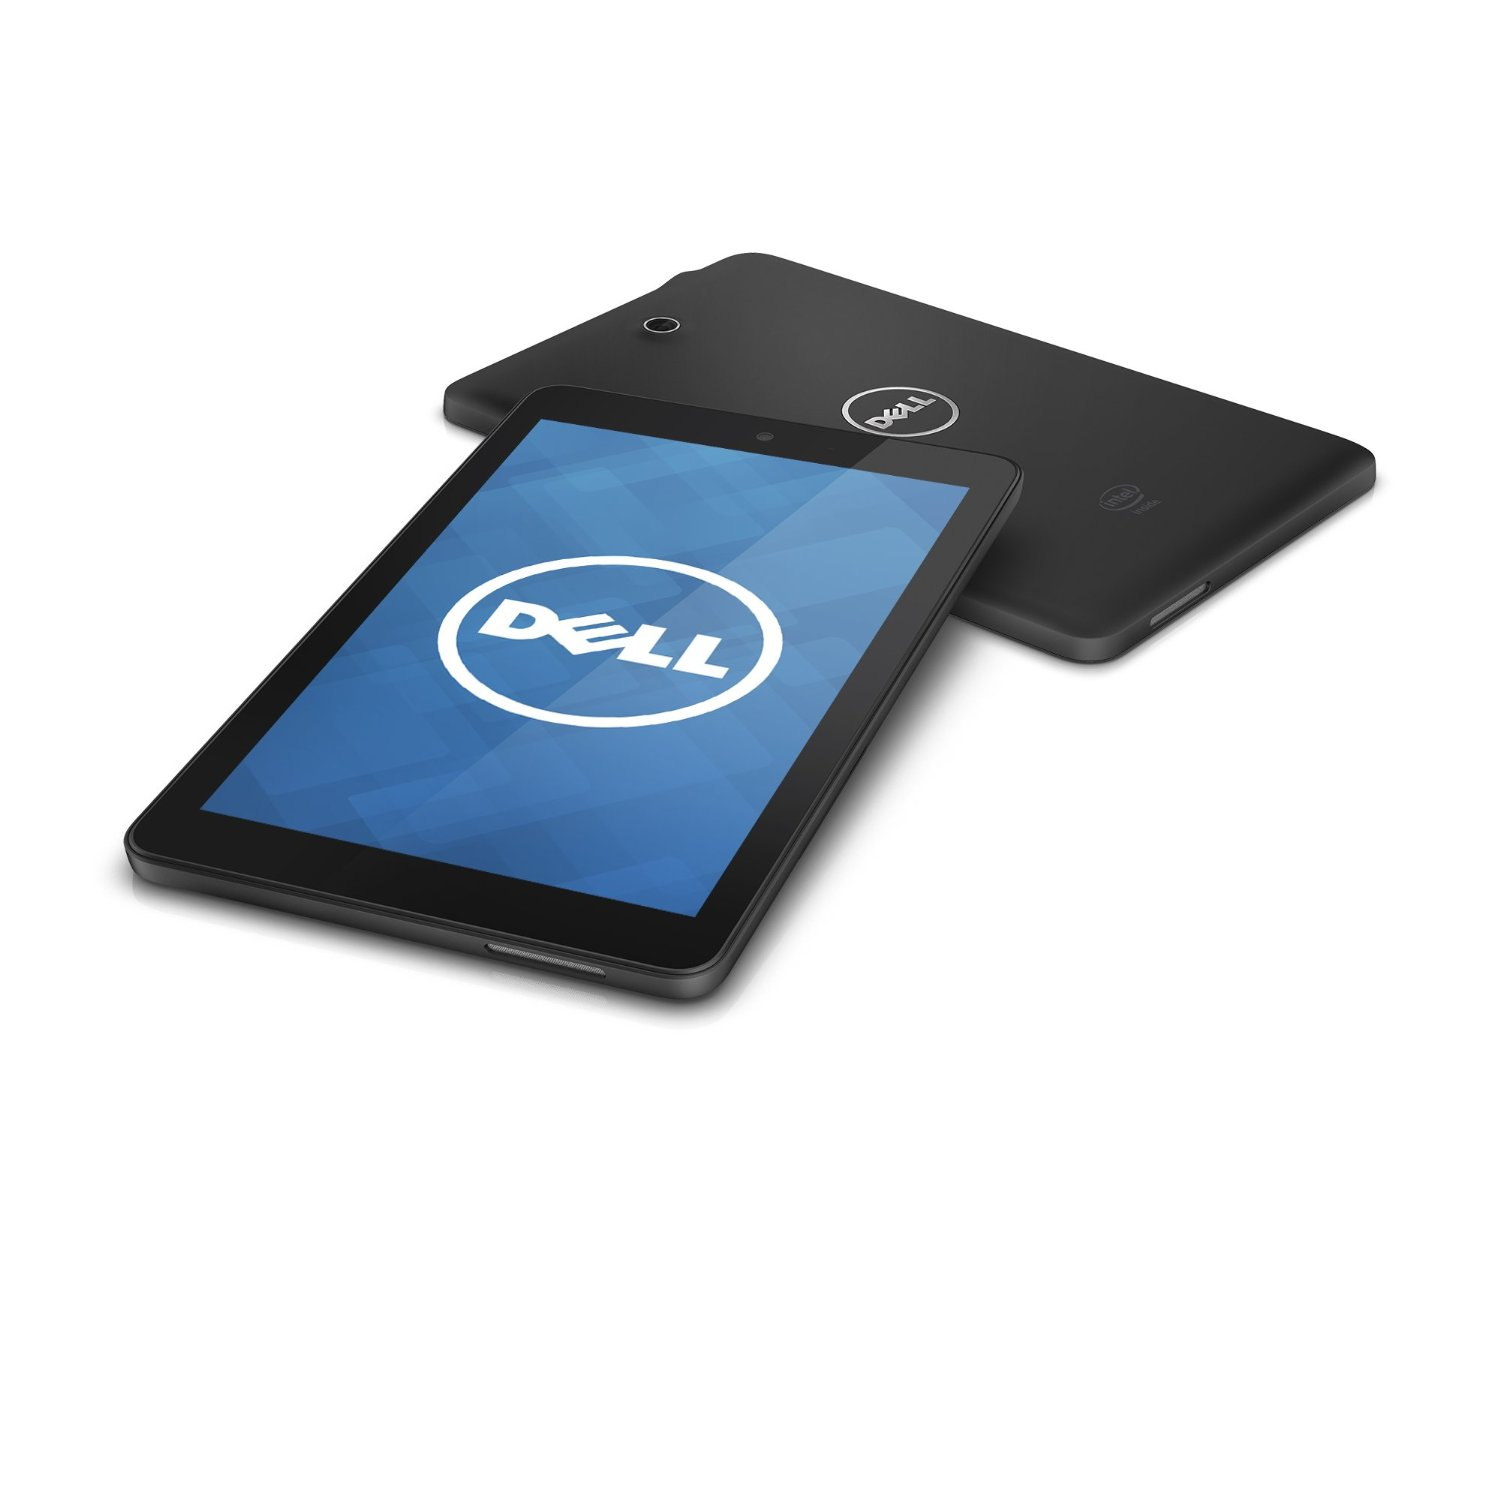 Dell Venue 8 Tablet Android